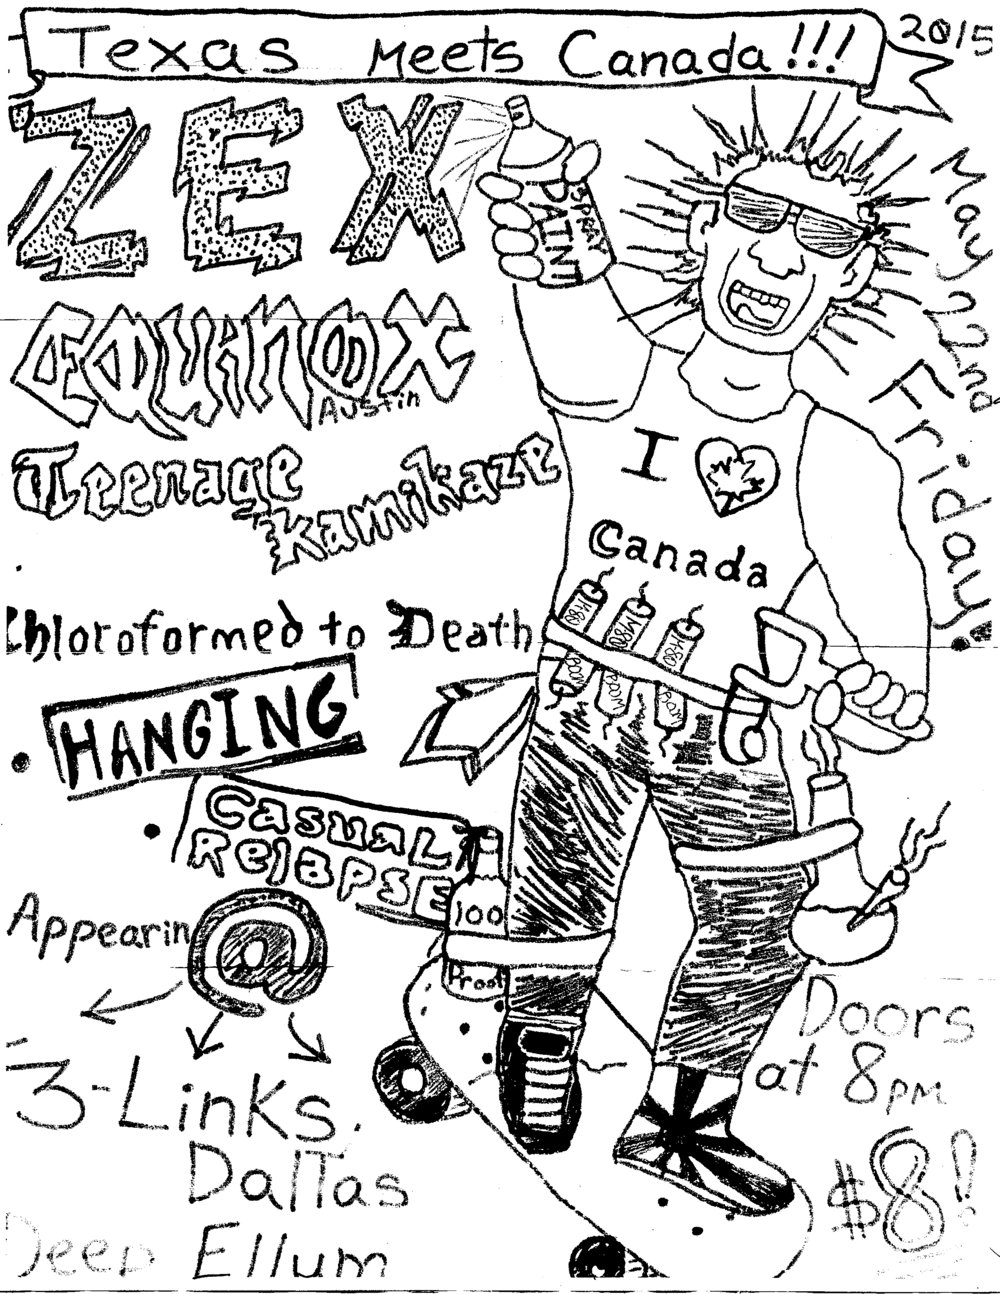 flyer-15.05.22-dallas-zex-2.jpg